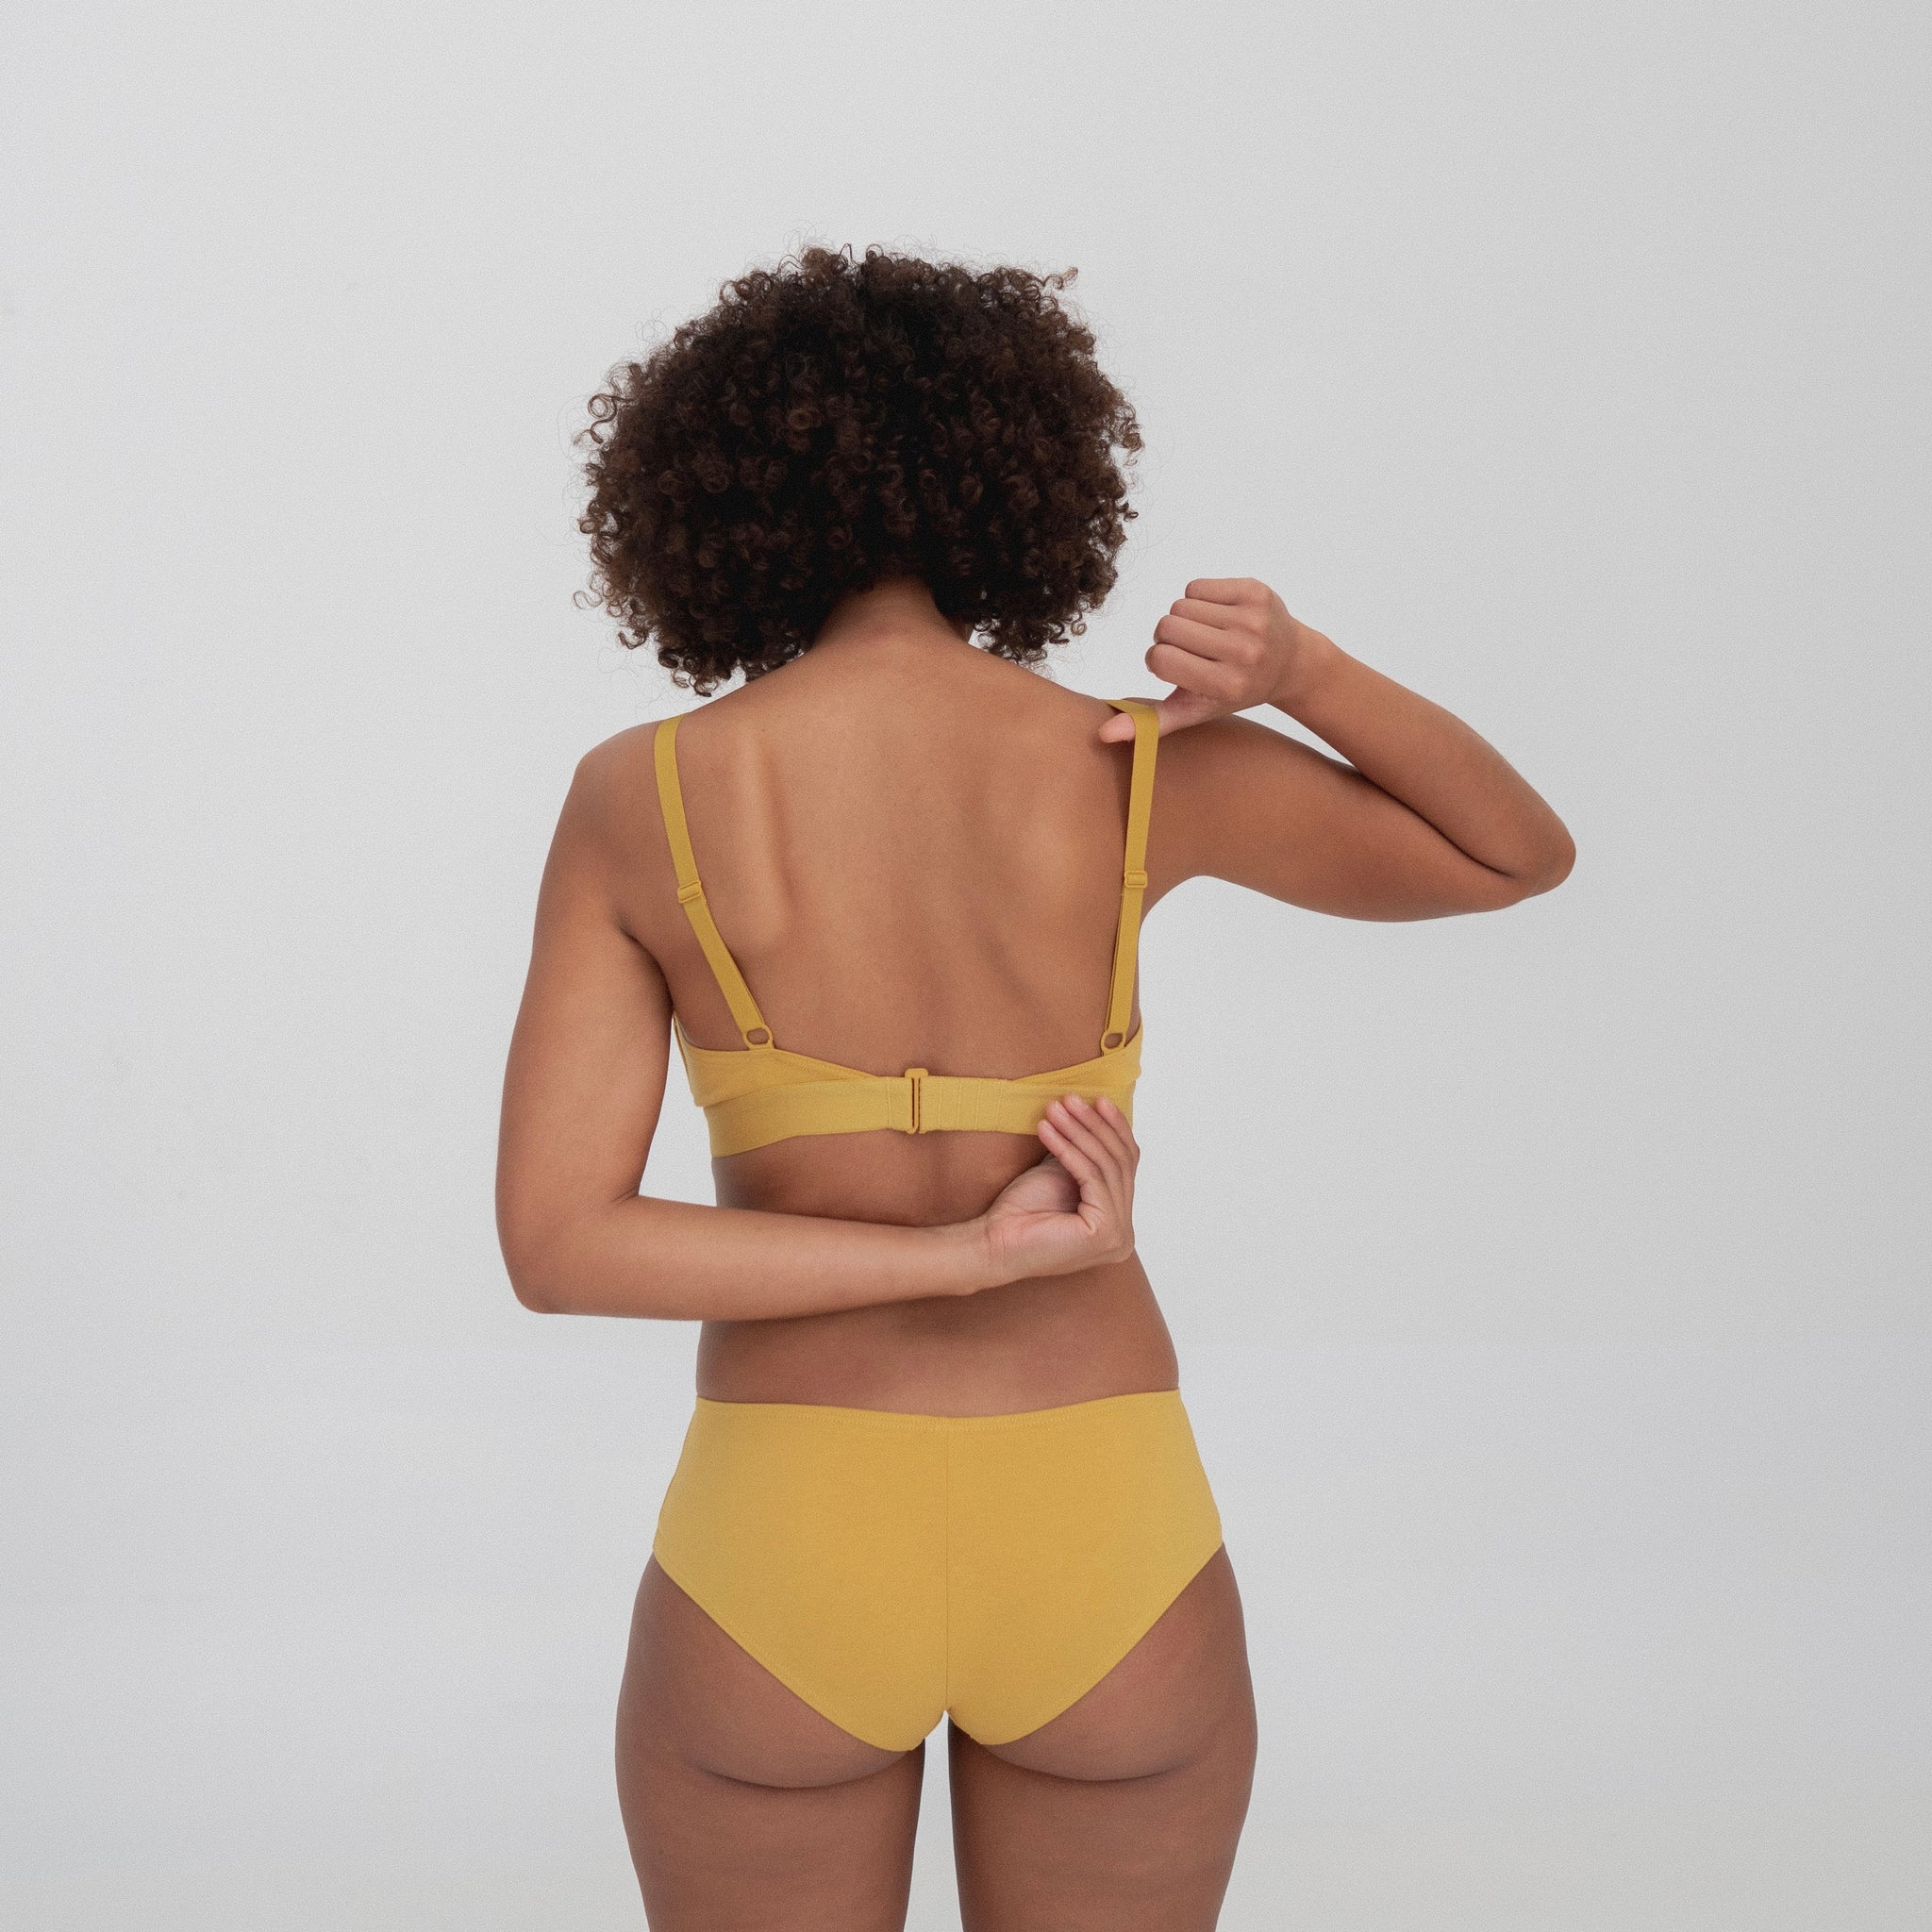 The Nude Label Culotte Brief in Sunflower